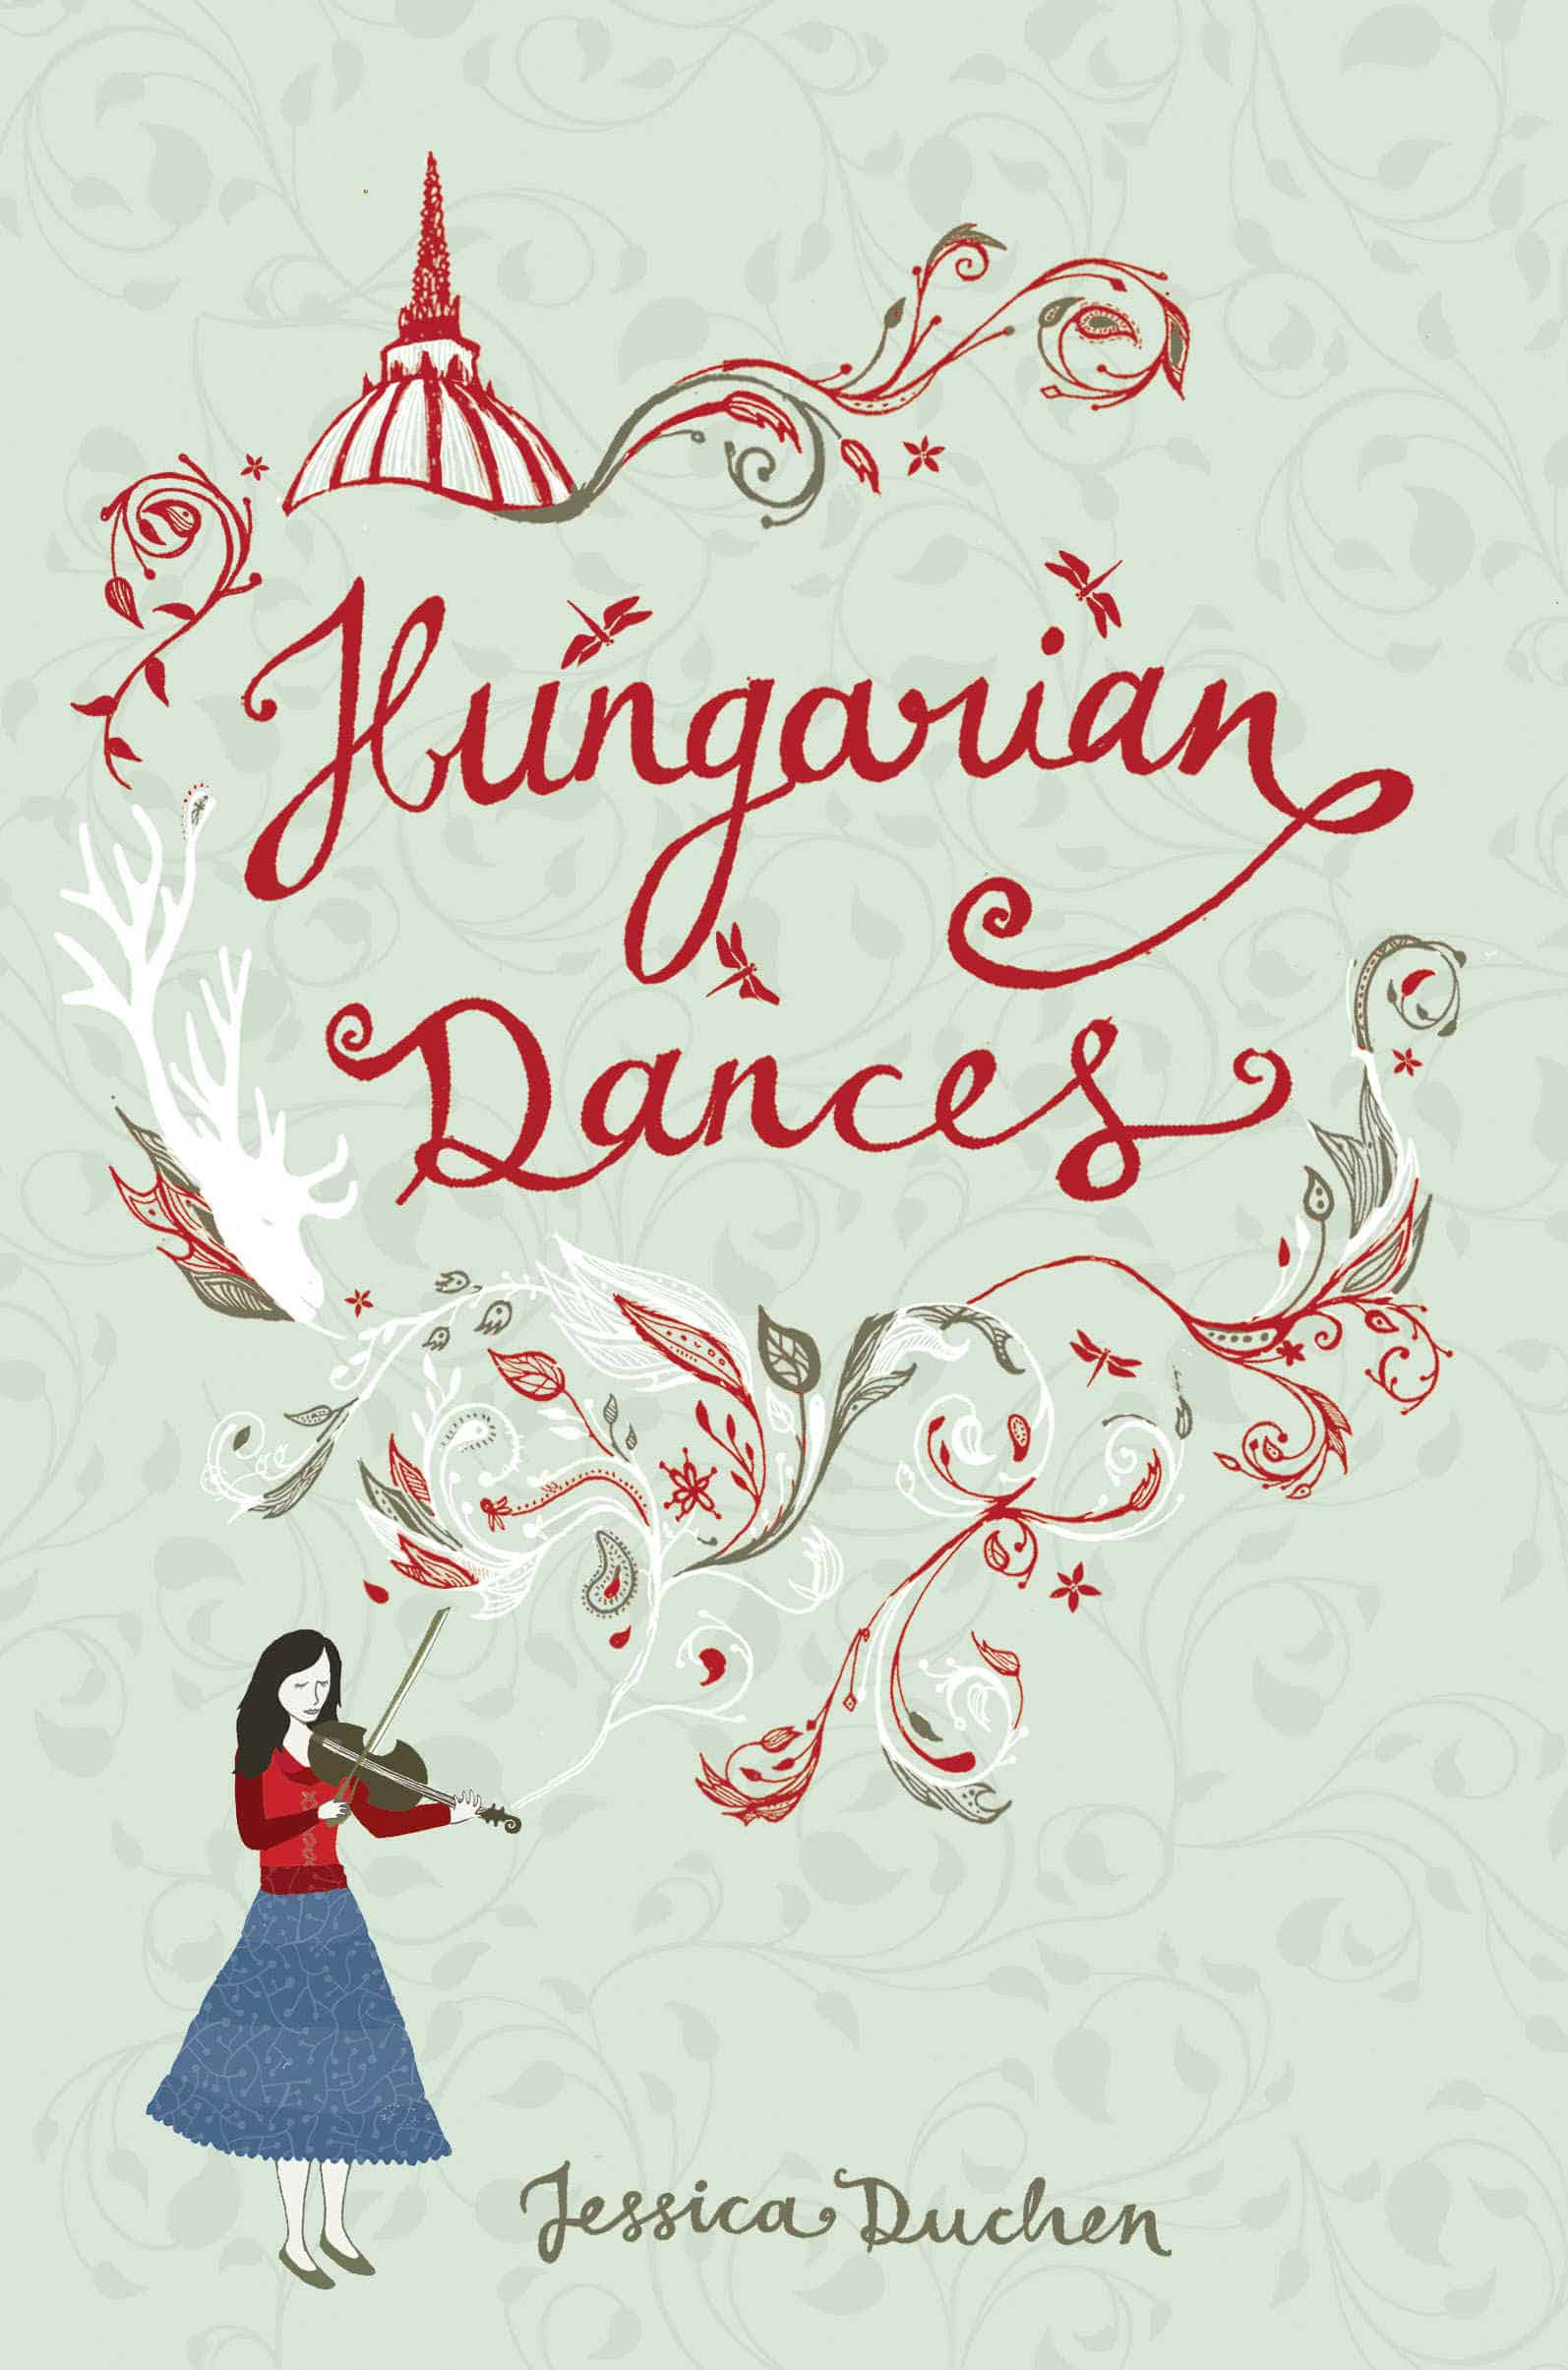 """""""Hungarian Dances"""" published by Hodder & Stoughton, March 2008."""